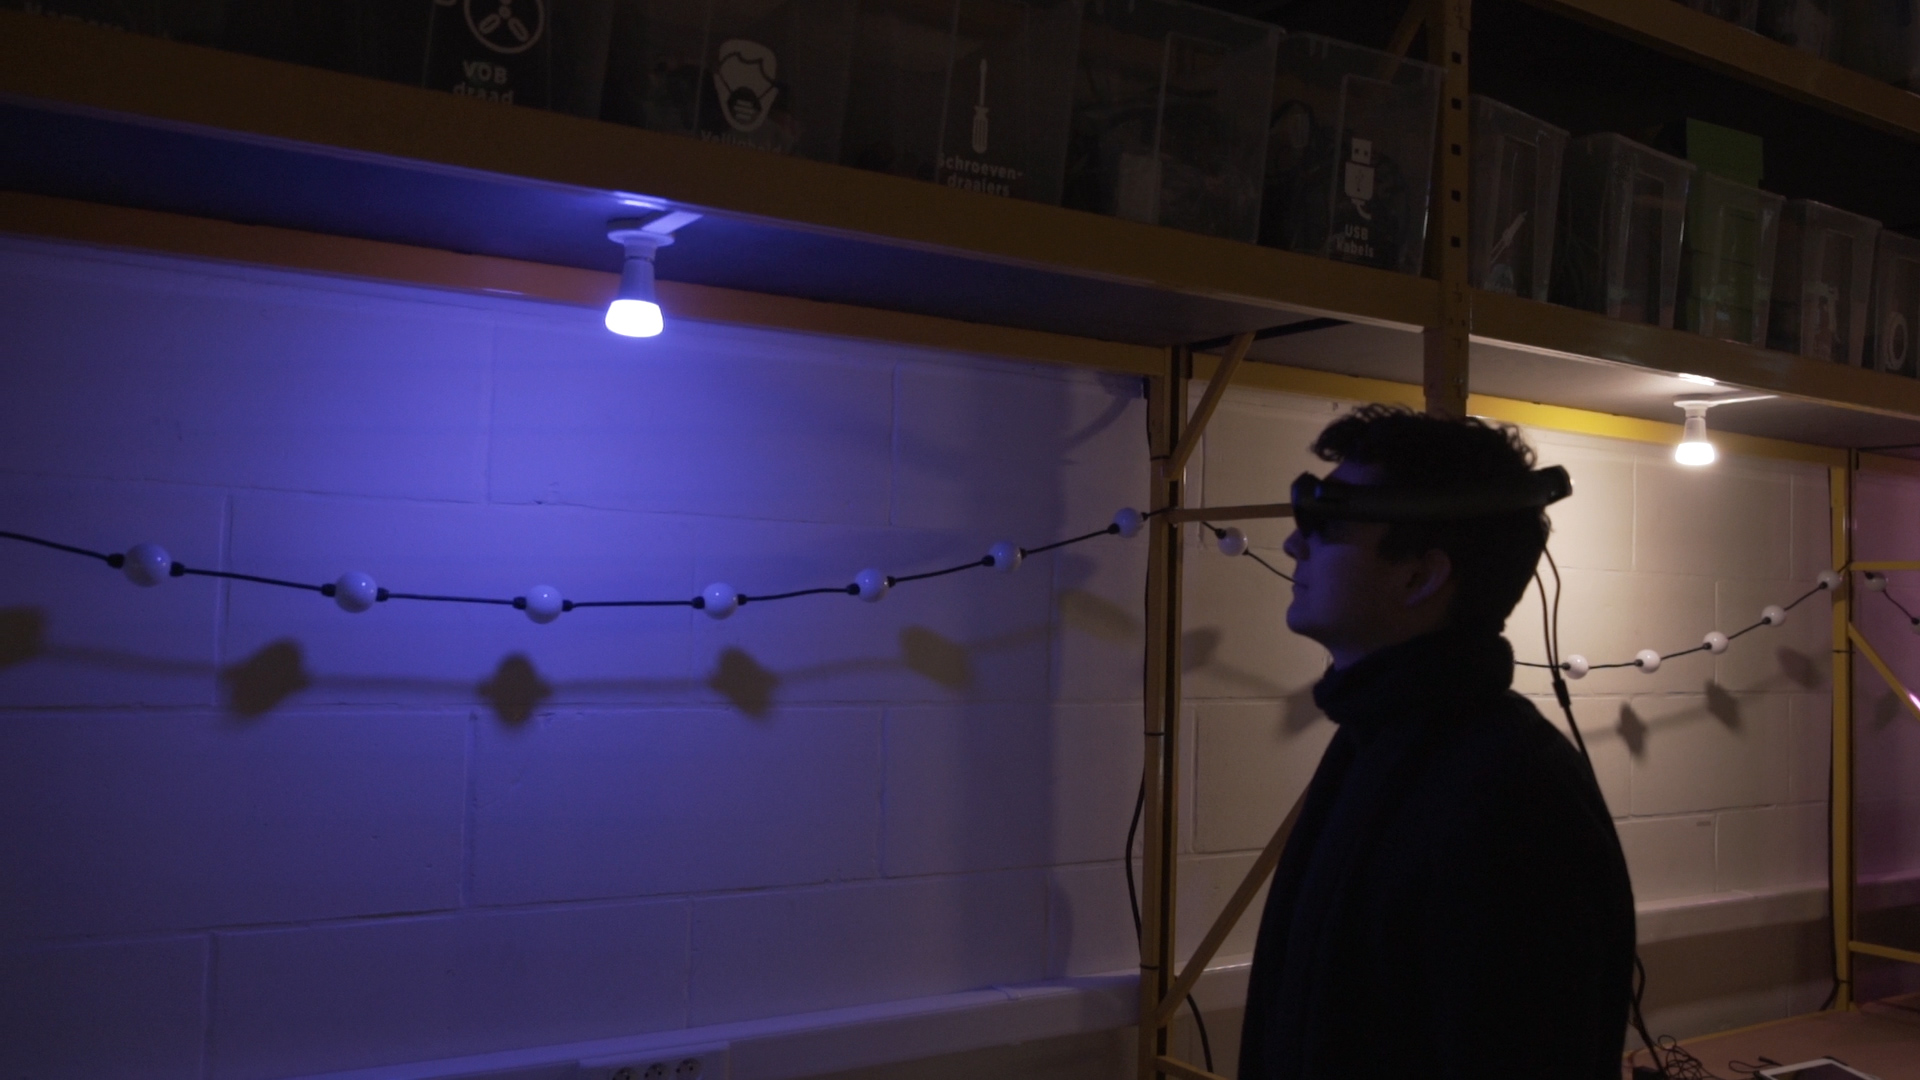 Manipulate light with a simple gesture